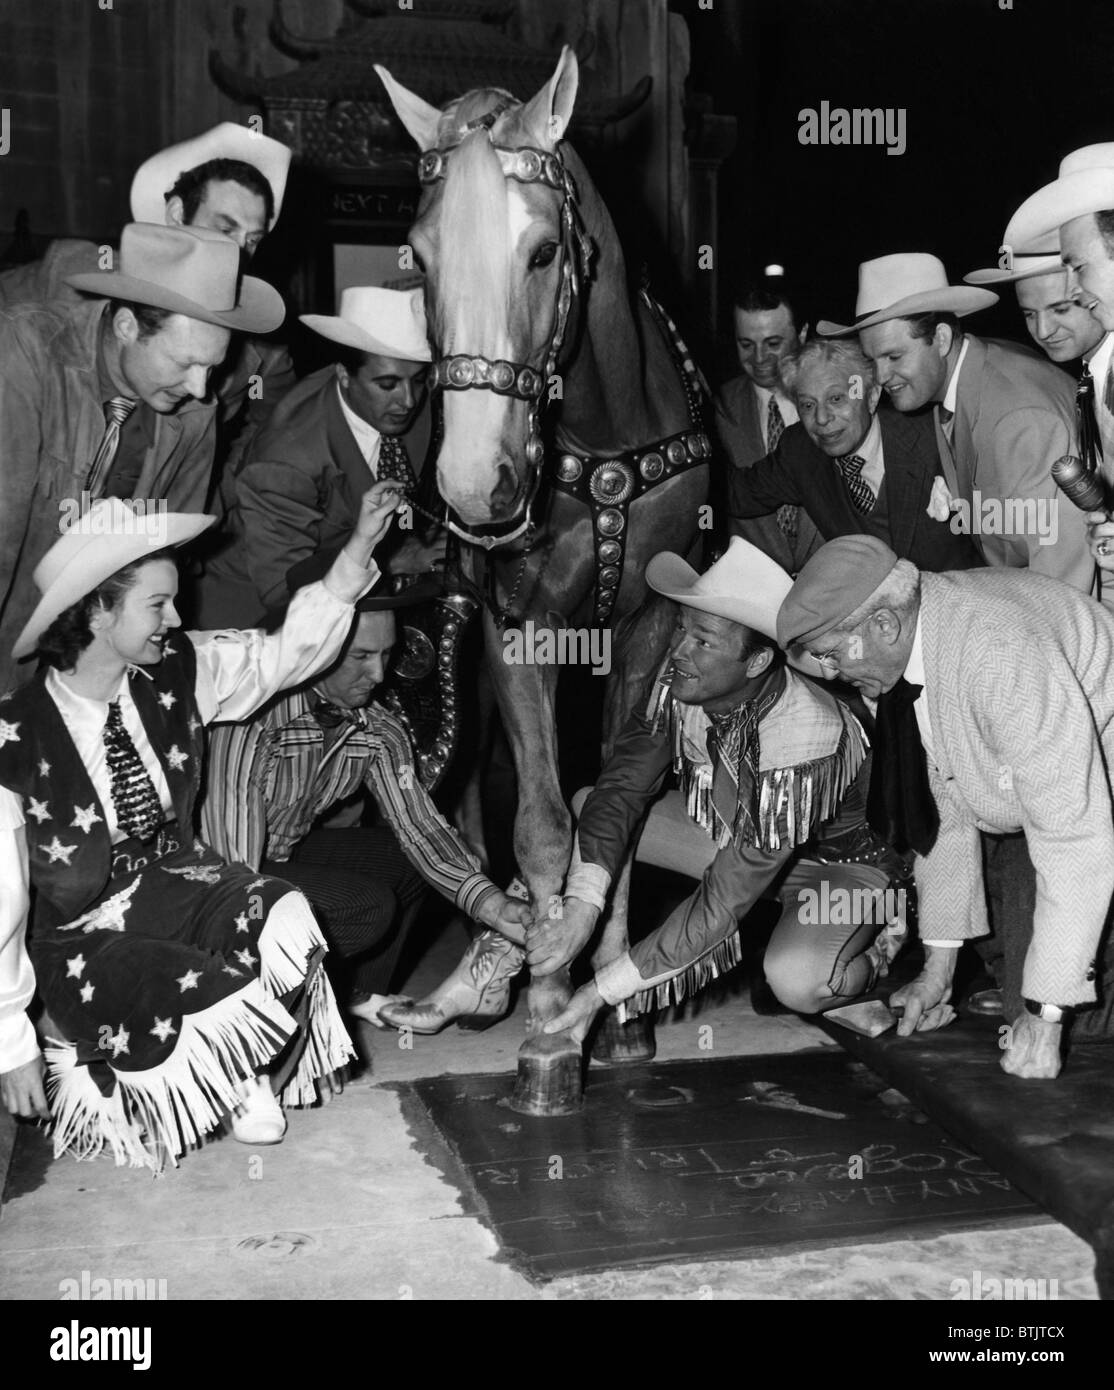 Western film star Roy Rogers (second from right), being honored at Grauman's Chinese Theater along with his - Stock Image